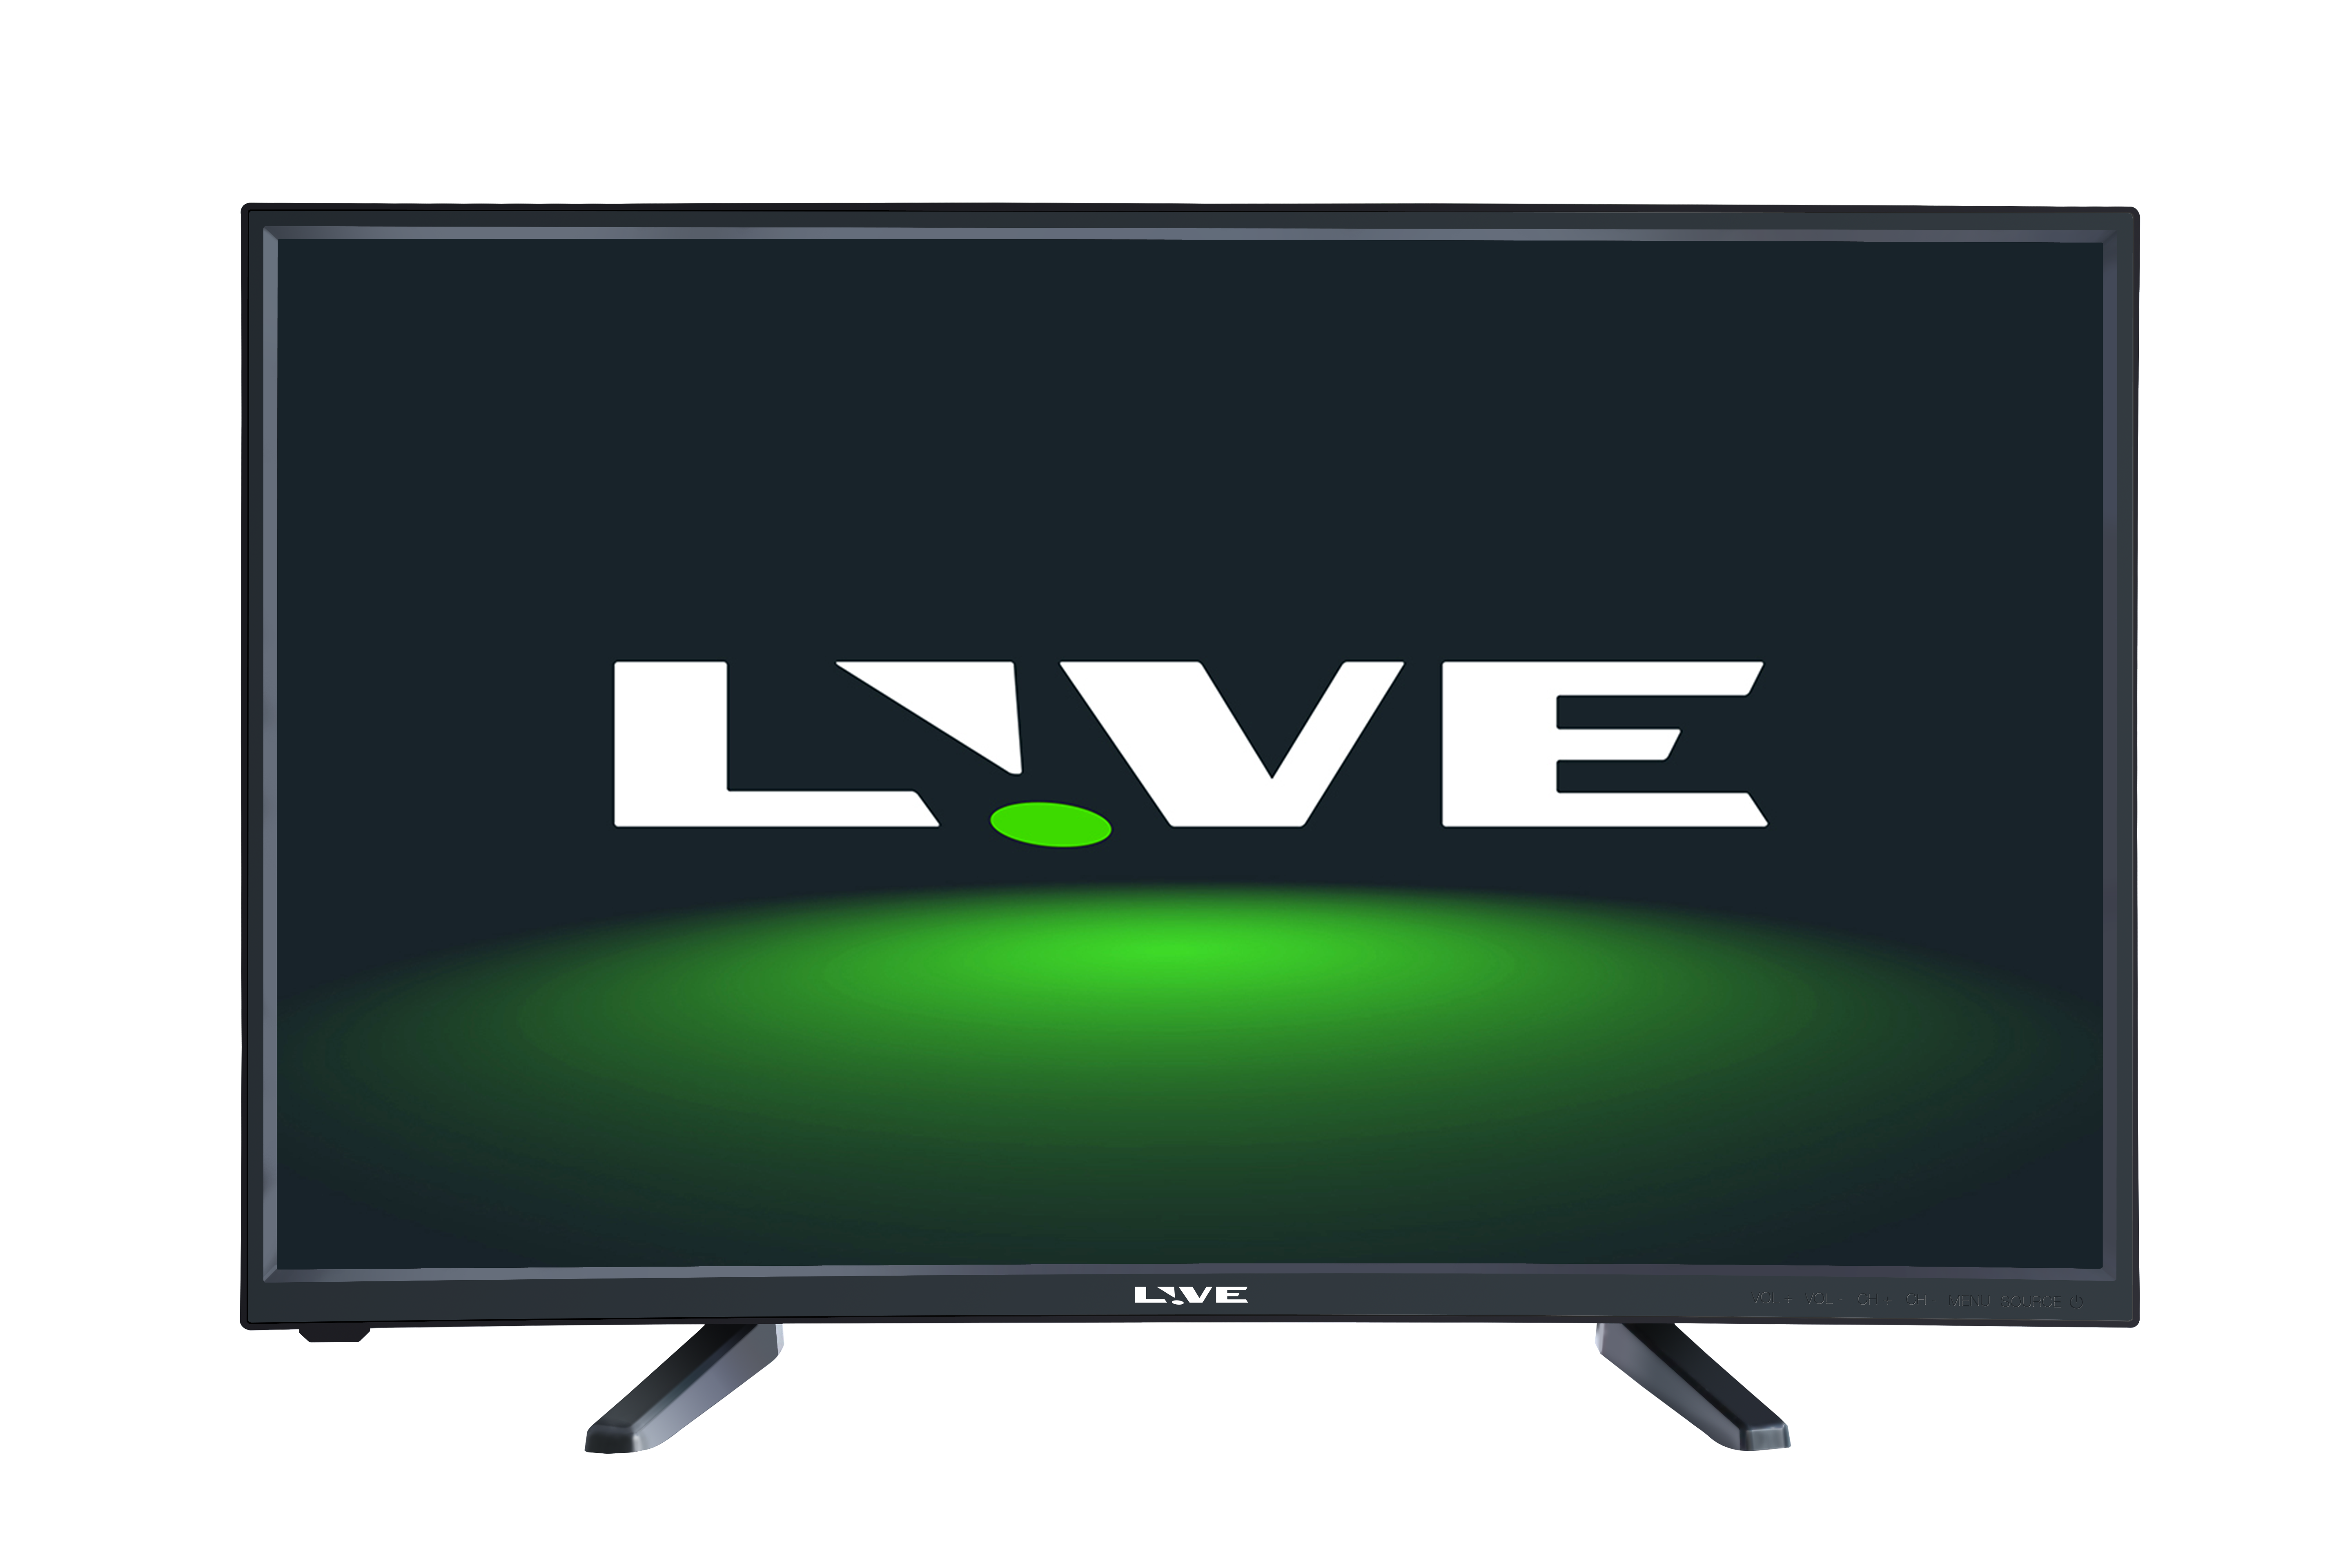 Live Tv - 32 inches